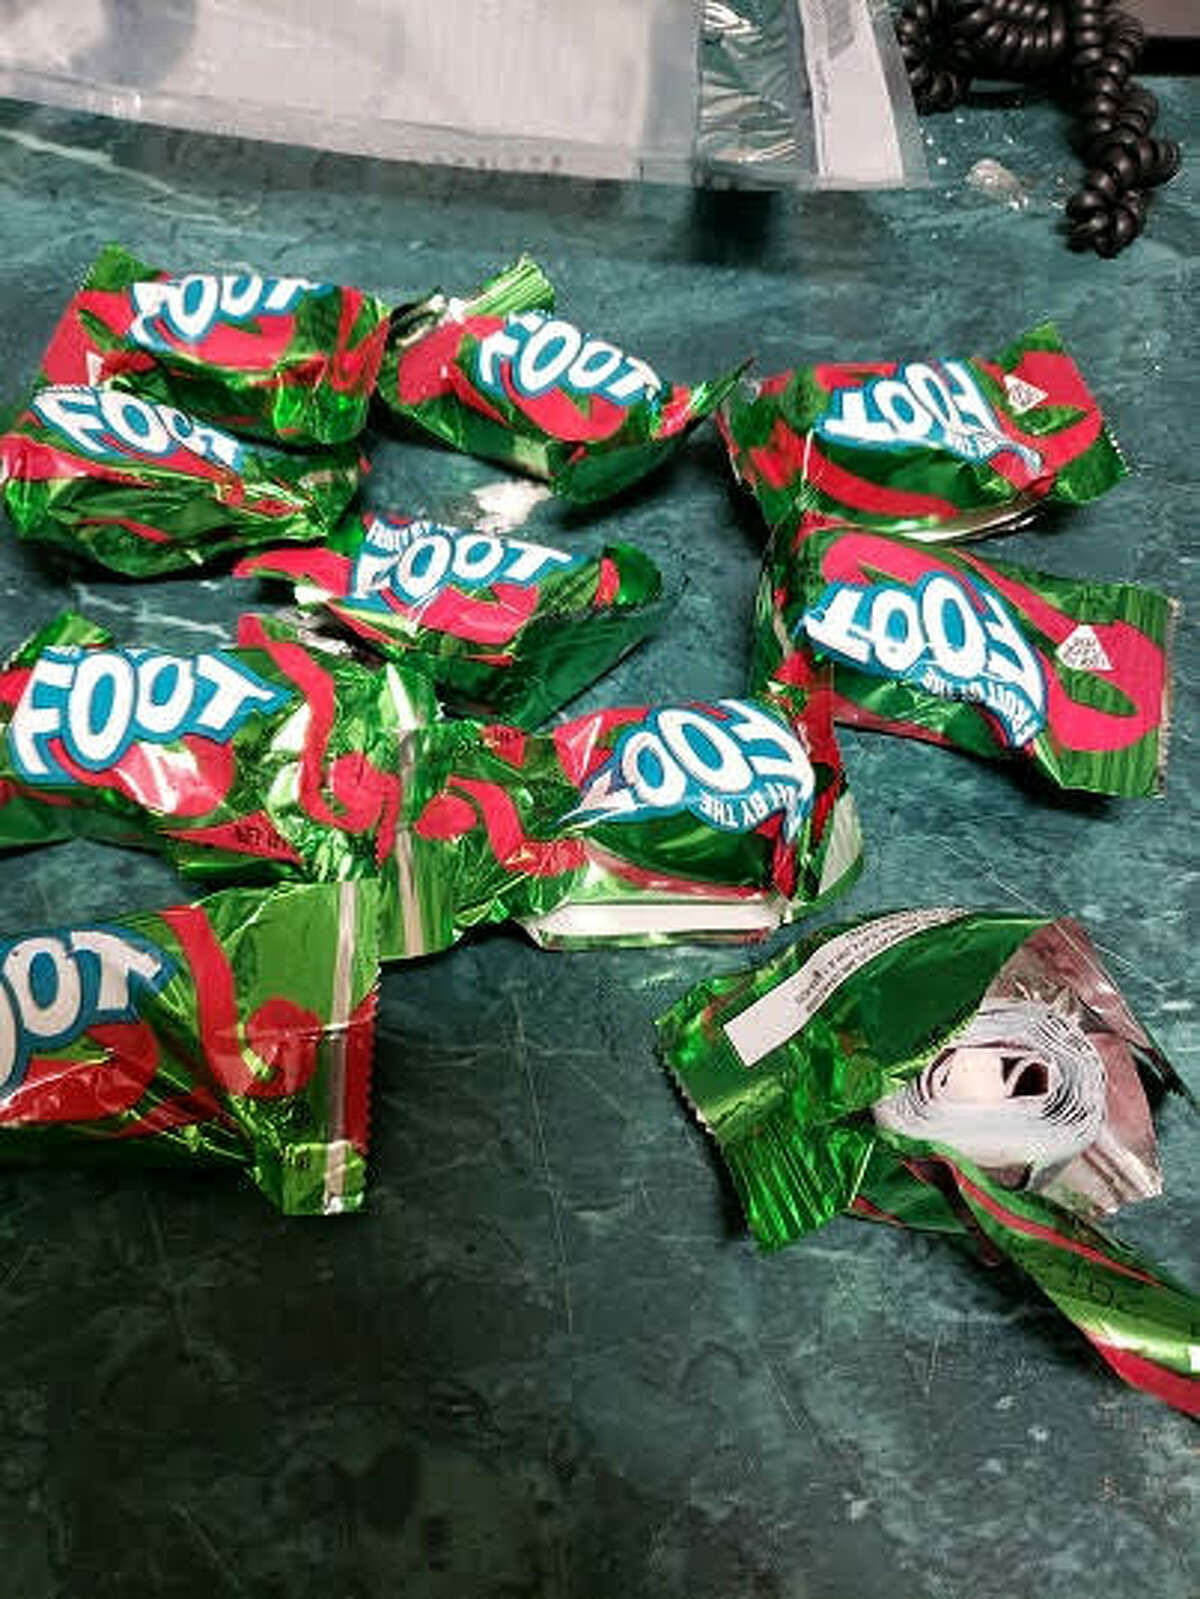 Police said they arrested a Troy man after they caught him with crack cocaine hidden in bags of candy.